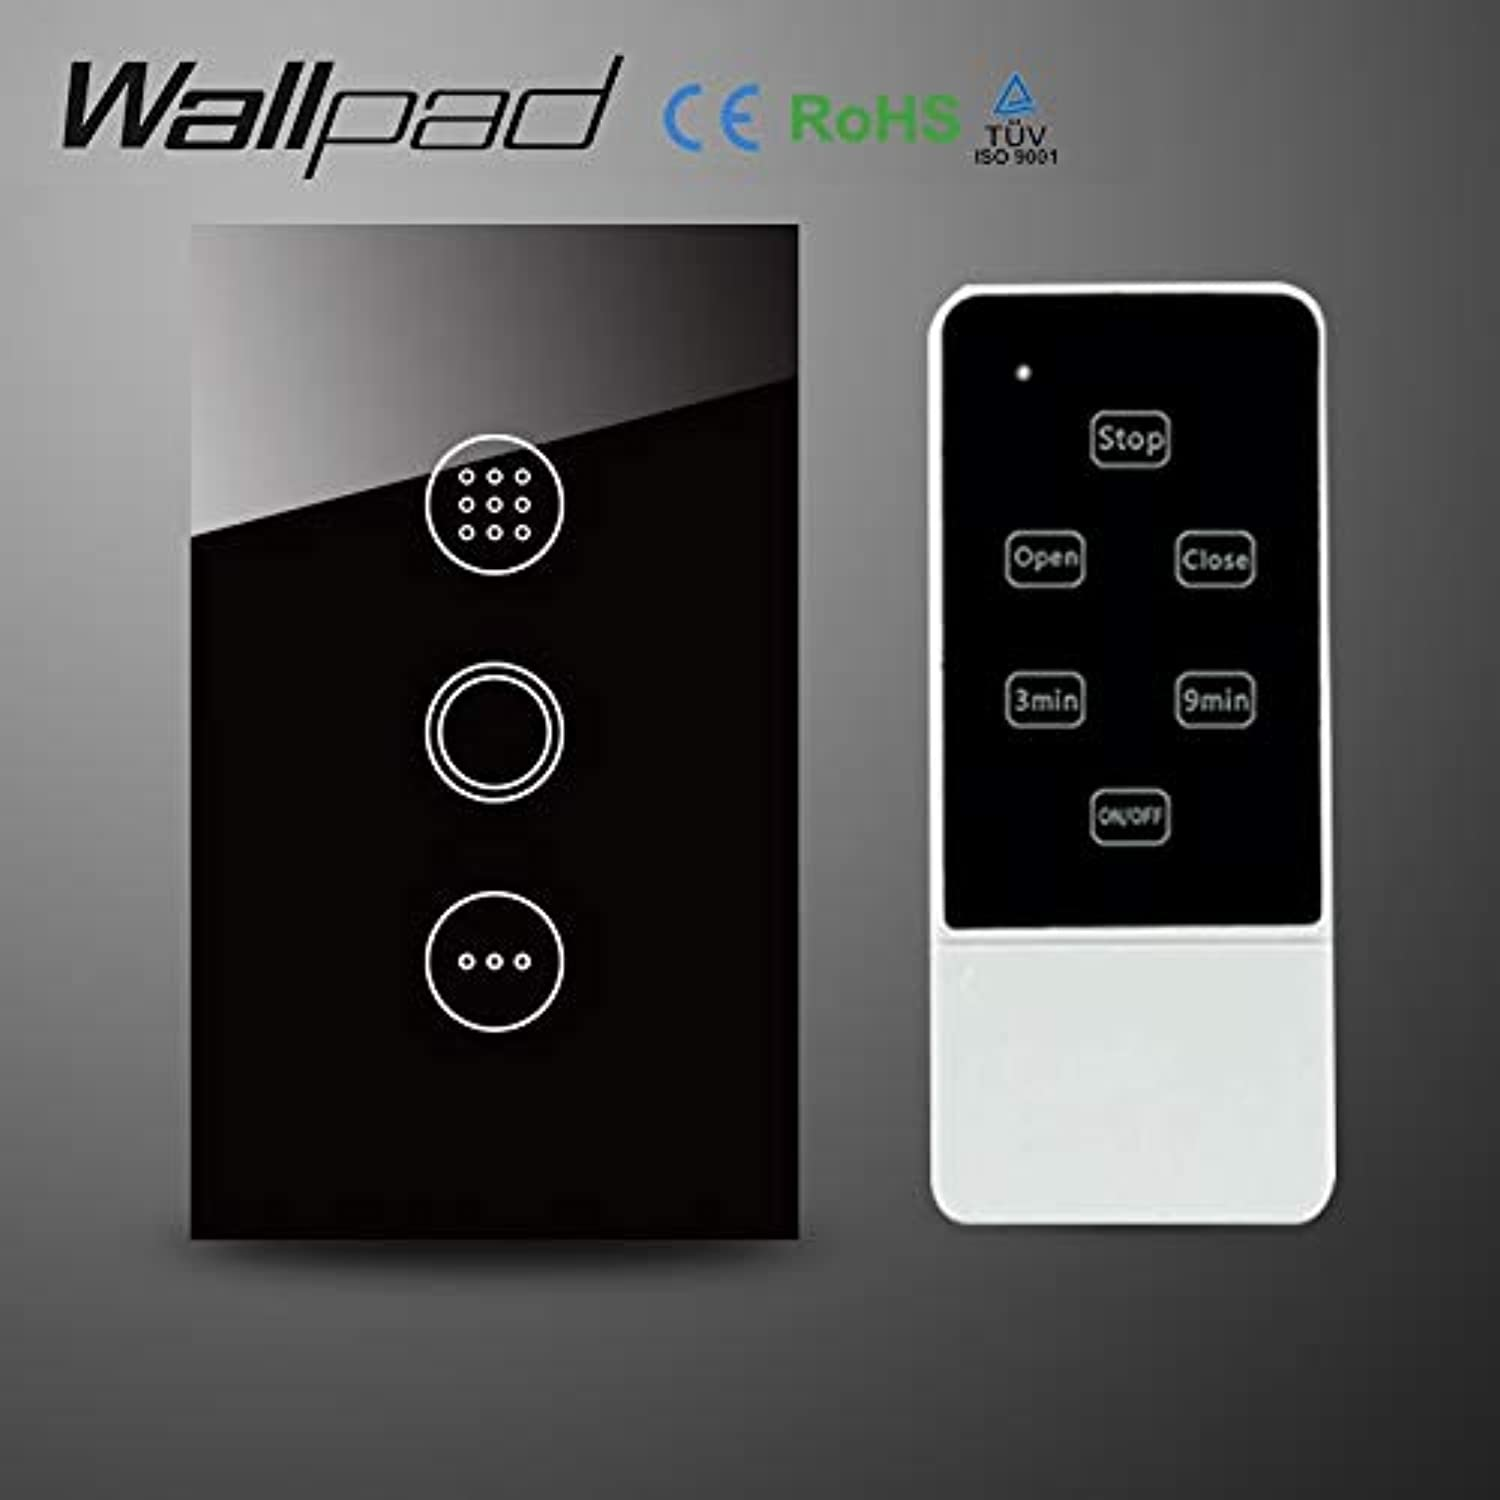 Wallpad 118 US AU Crystal Glass Black WiFi Time Delay Switch,Wireless Remote Control Wall Timmer Touch Switch,